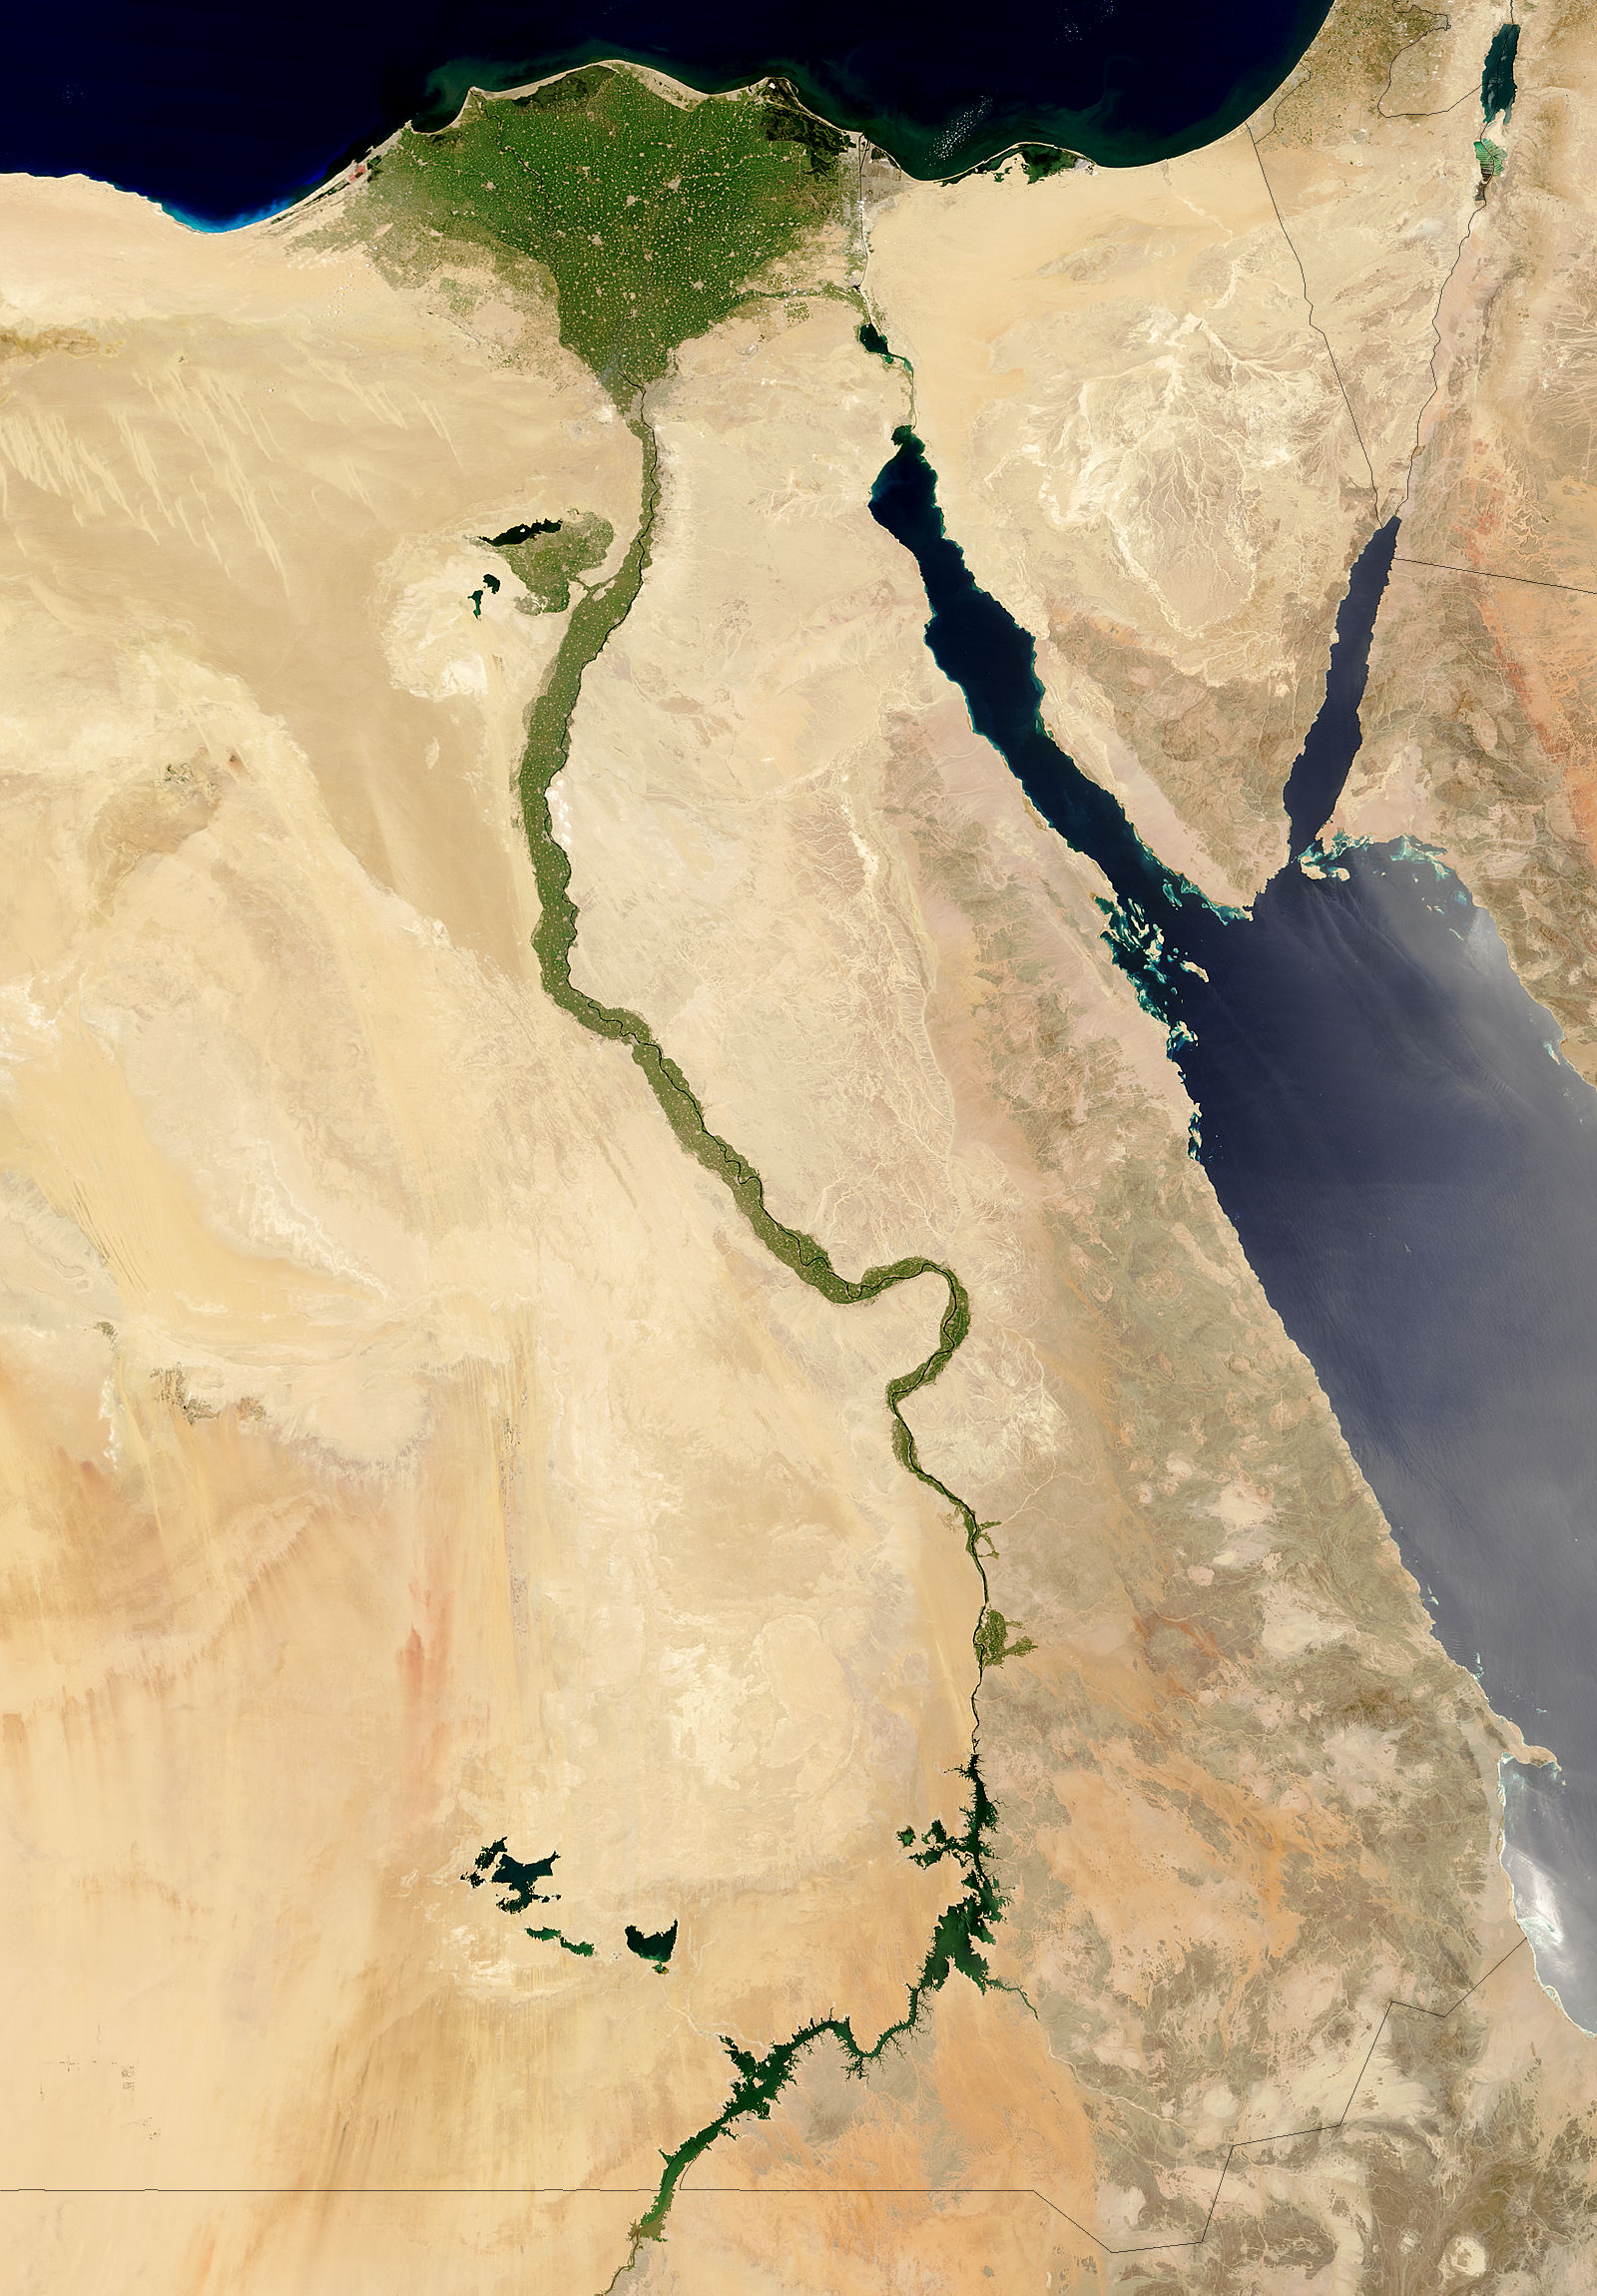 https://i0.wp.com/eoimages.gsfc.nasa.gov/images/imagerecords/71000/71790/Egypt.A2004201.0830.500m.jpg